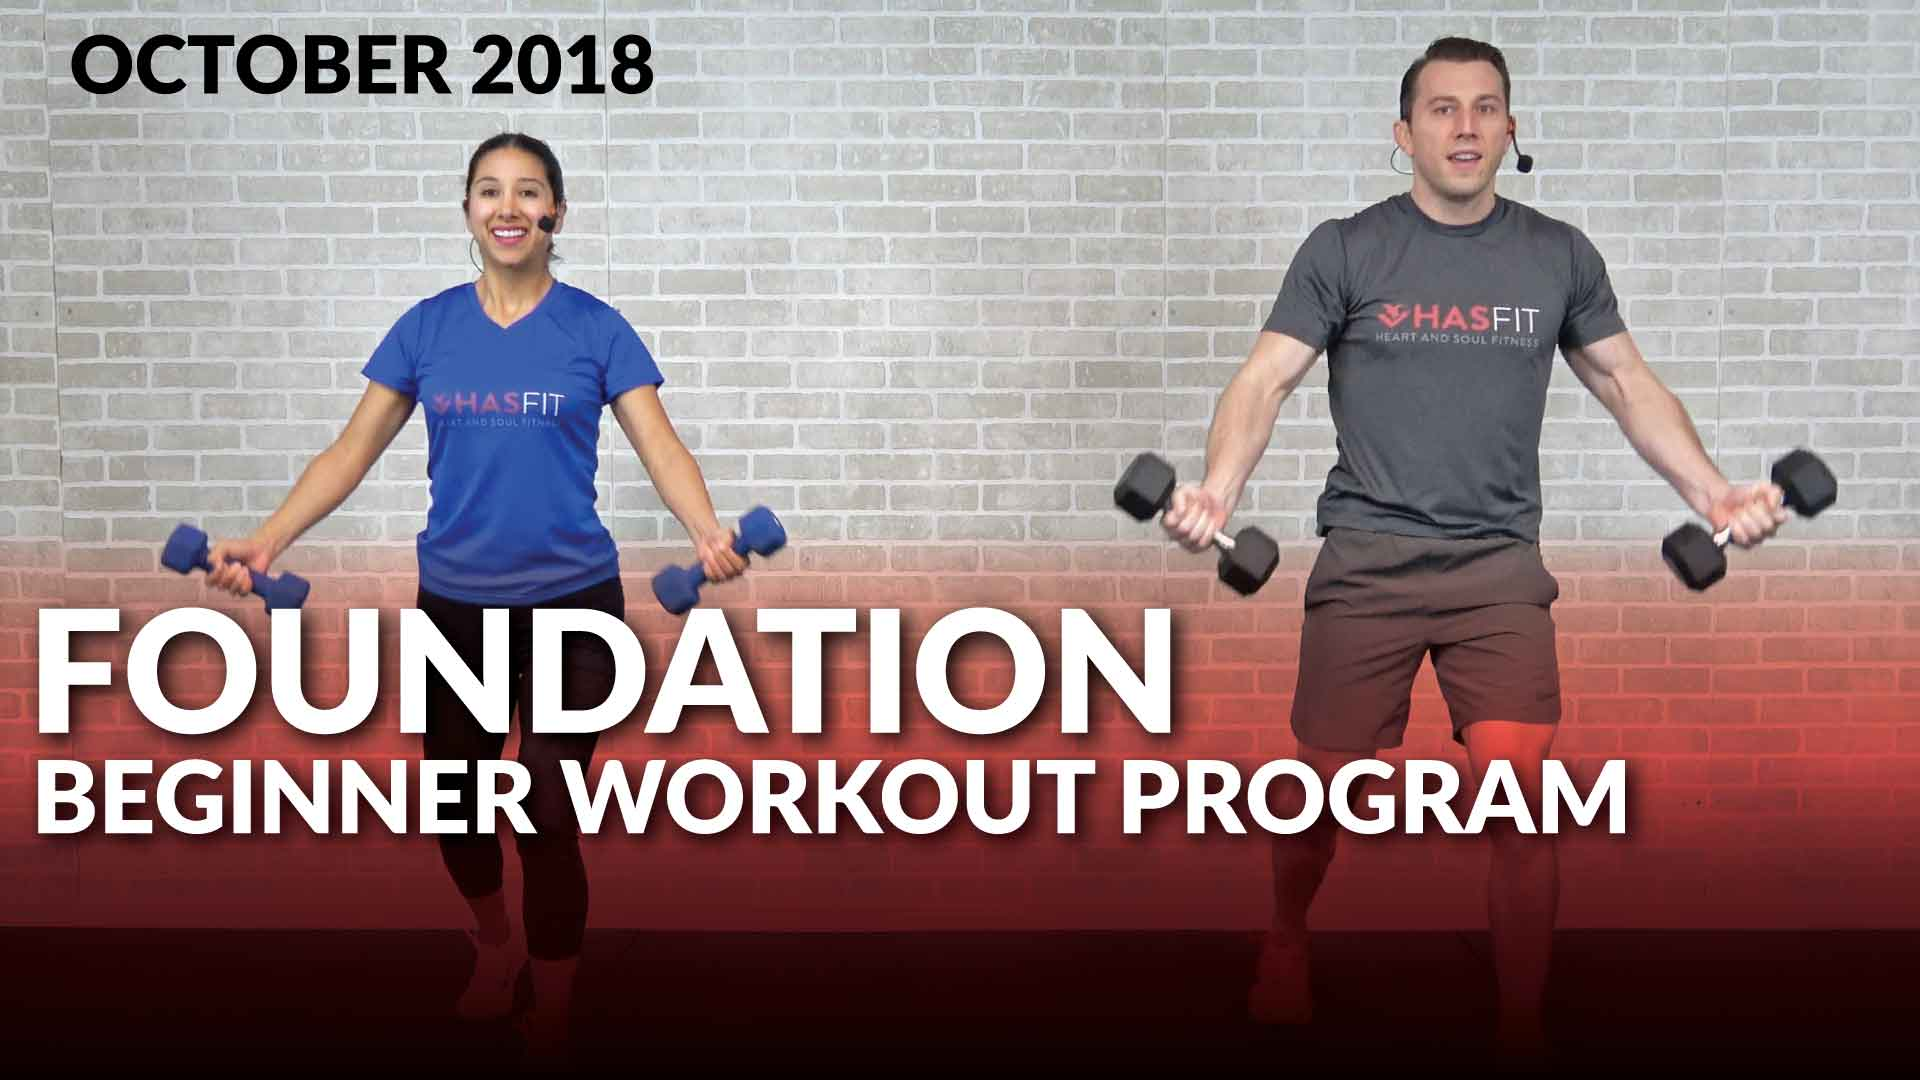 beginner workout program